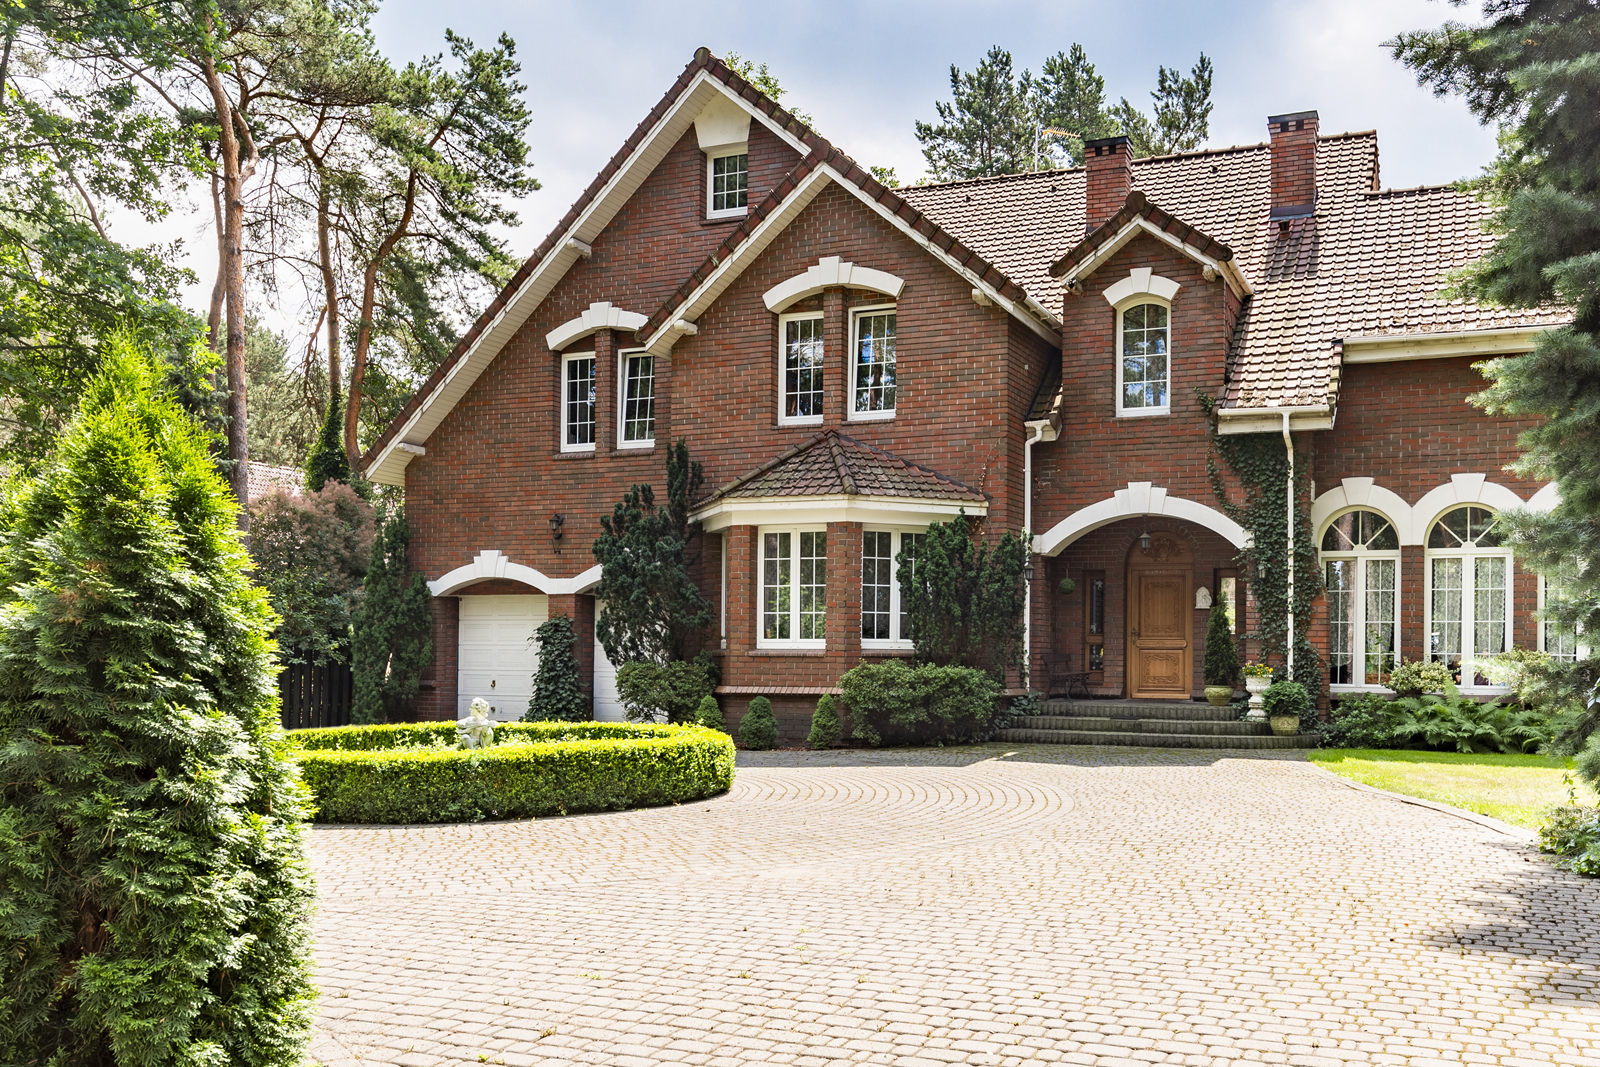 Buying Your First Home in the Luxury Real Estate Market?